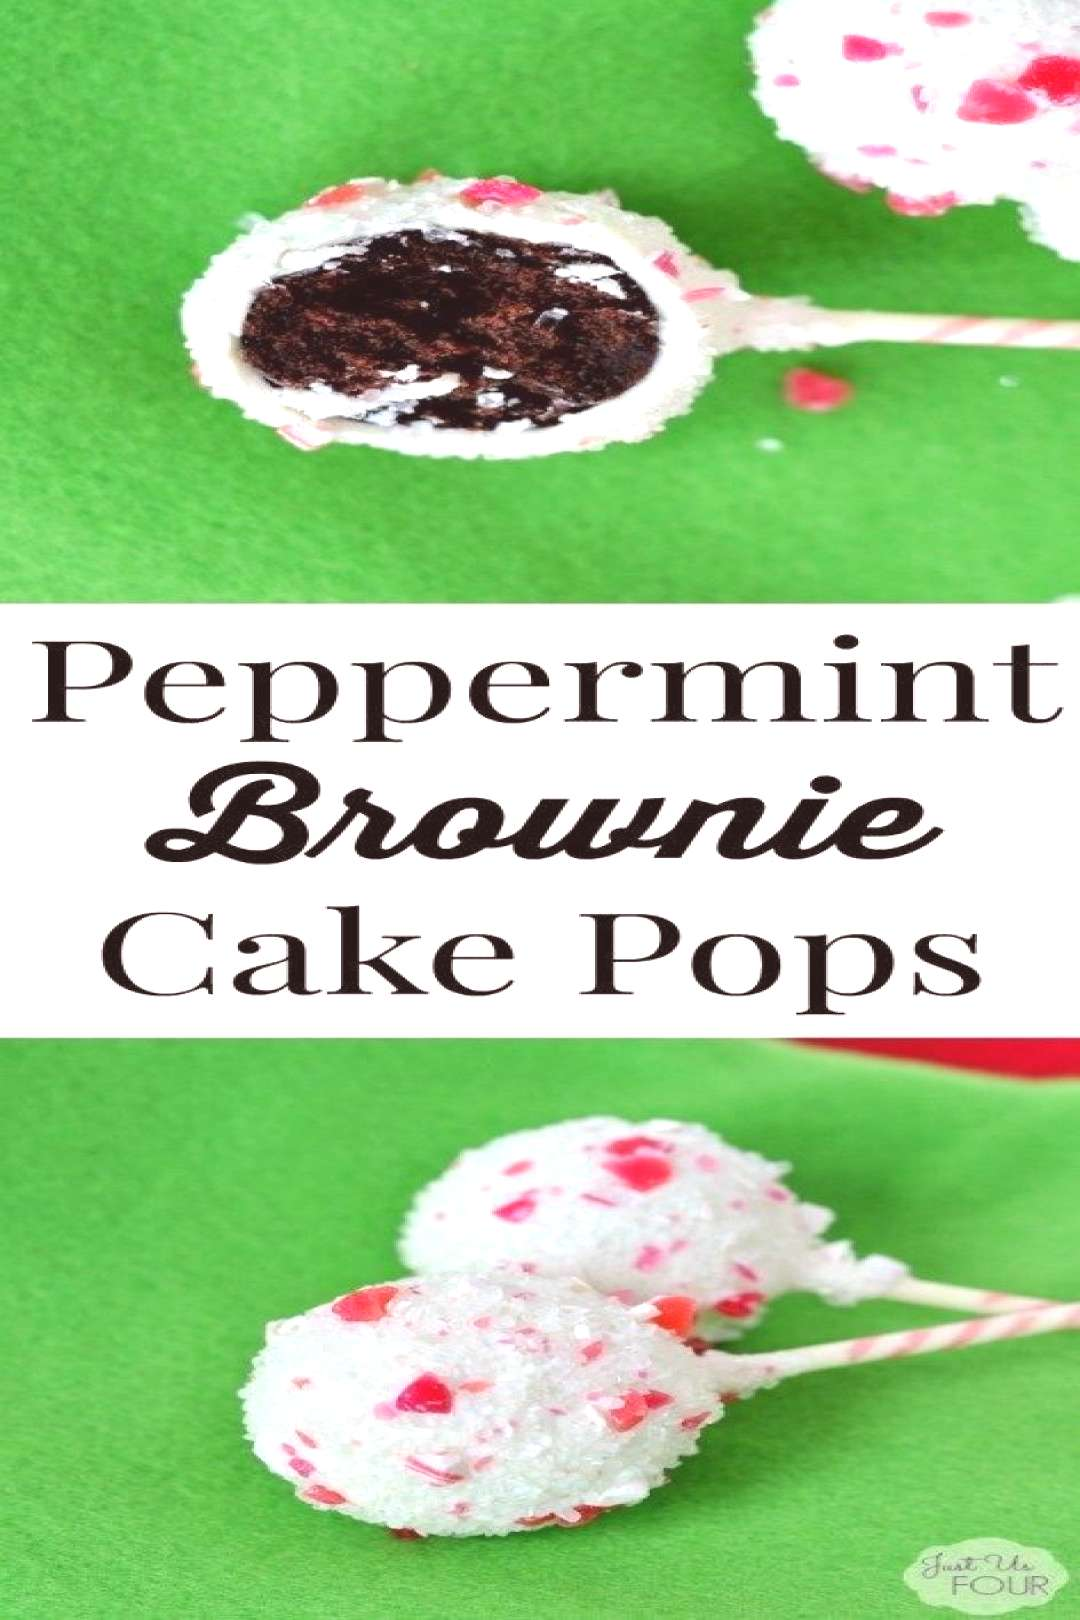 34 Cake Pop Recipes Youll Fall In Love With - Captain Decor